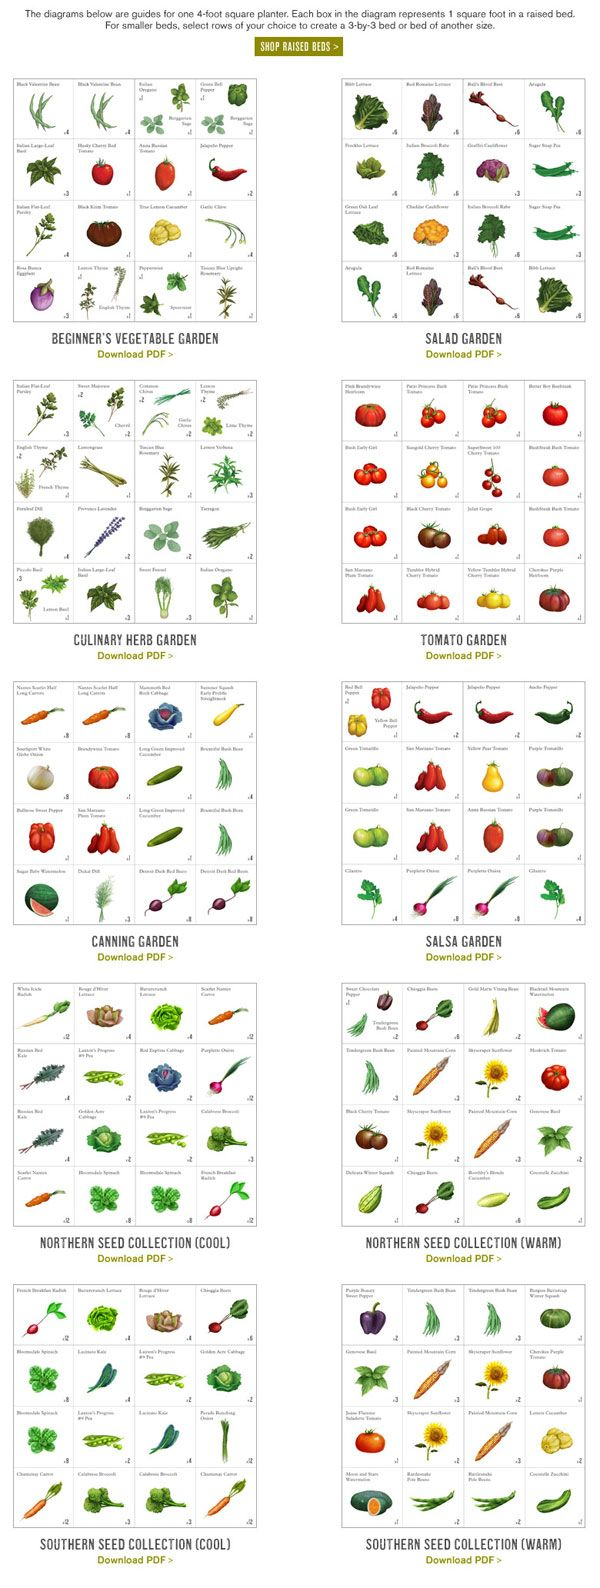 Williams-Sonoma Plant-A-Gram for raised bed gardens